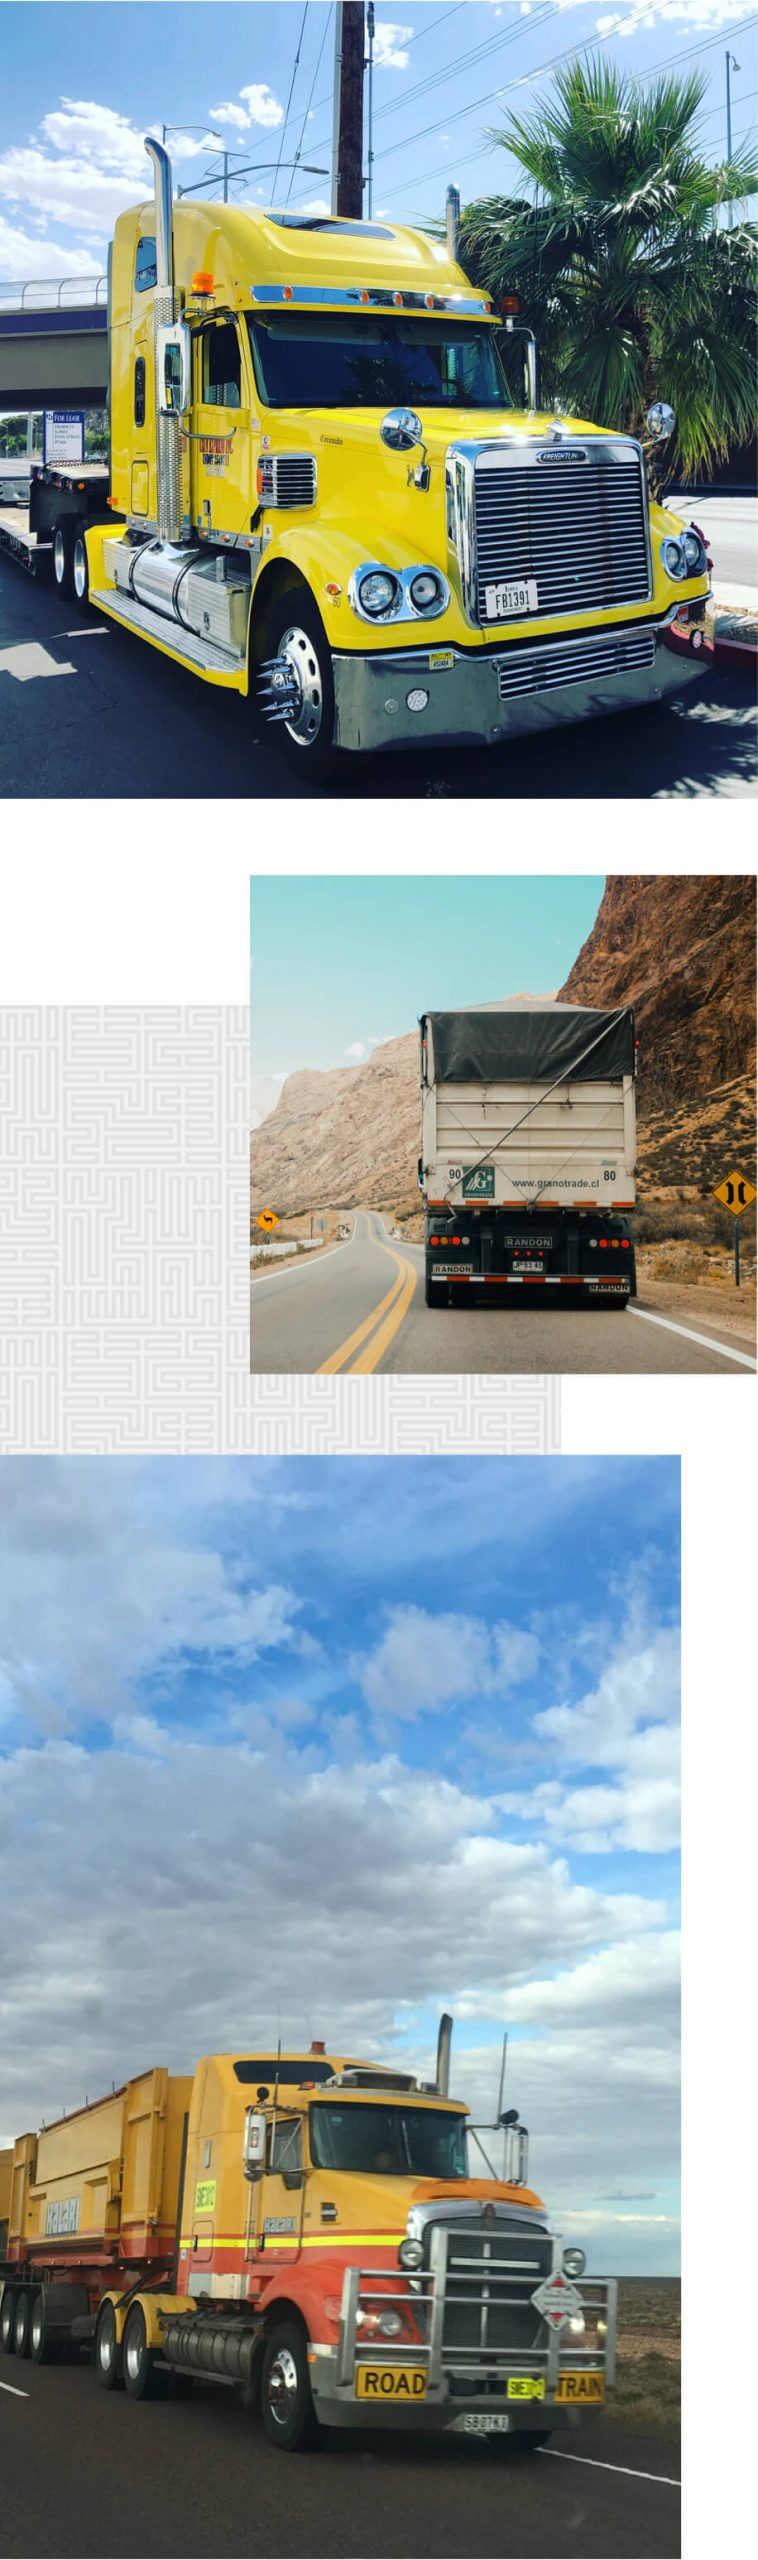 Prove negligence in a truck accident personal injury case